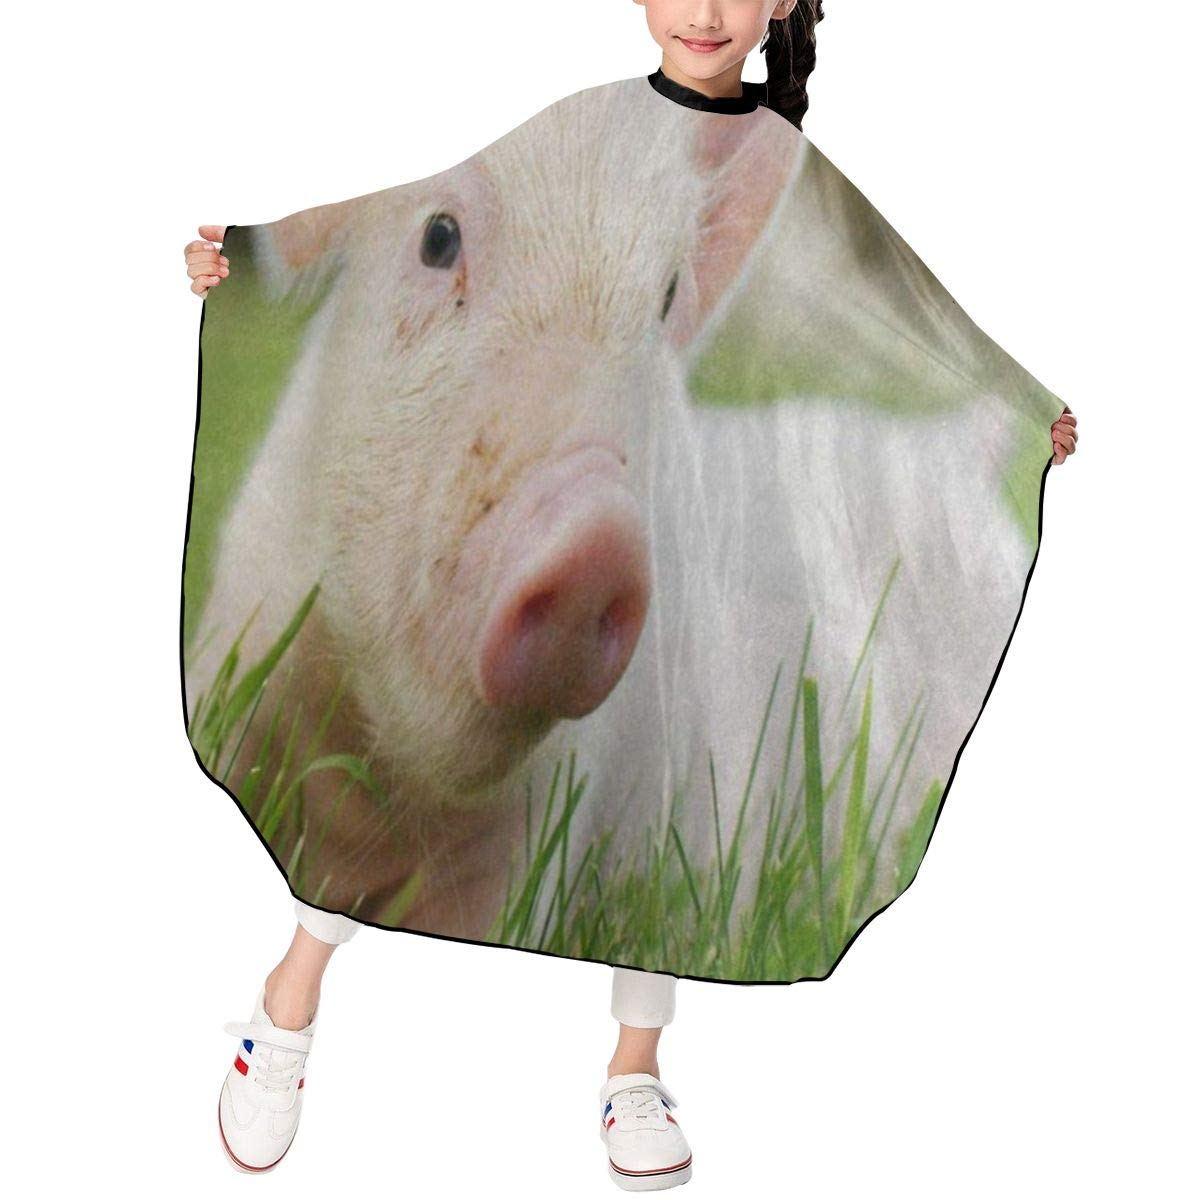 Barber Cape for Kids - Professional Hair Salon Cape with Adjustable Snap Closure Waterproof Hair Cutting Cape for Salon and Home 47 x 39 inches Pig Piggy Standing On Grass